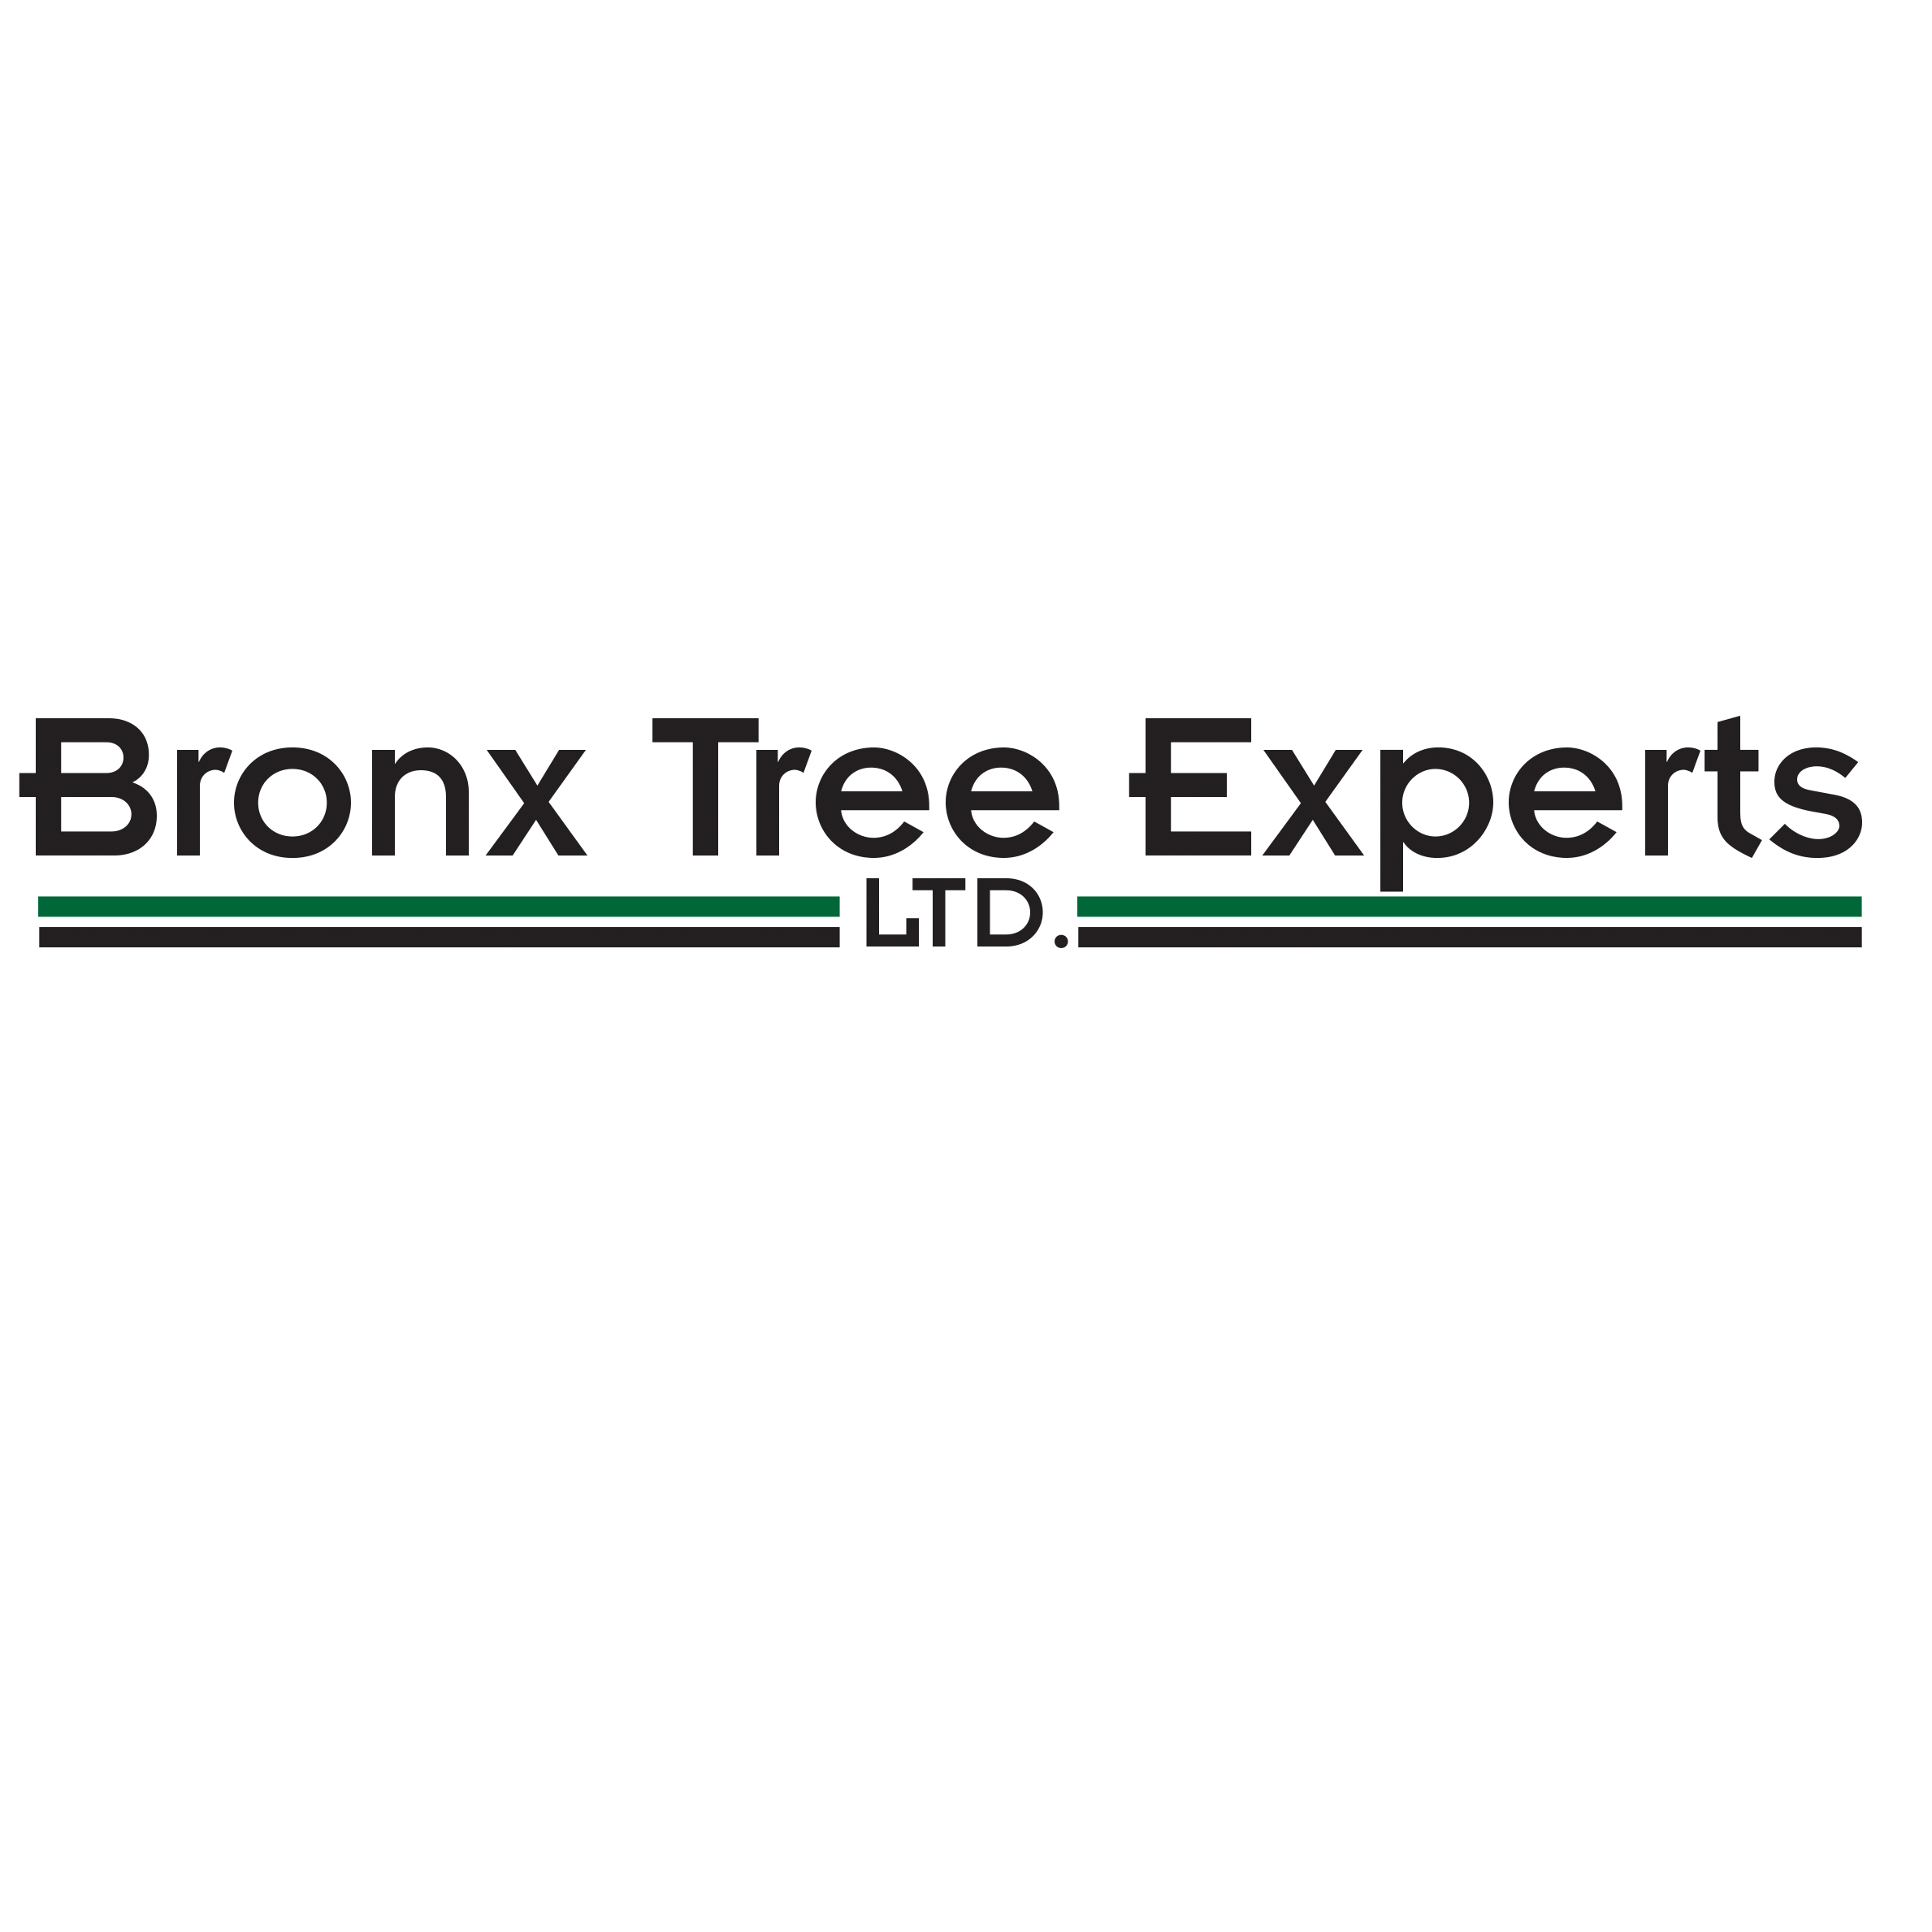 Bronx Tree Experts LTD